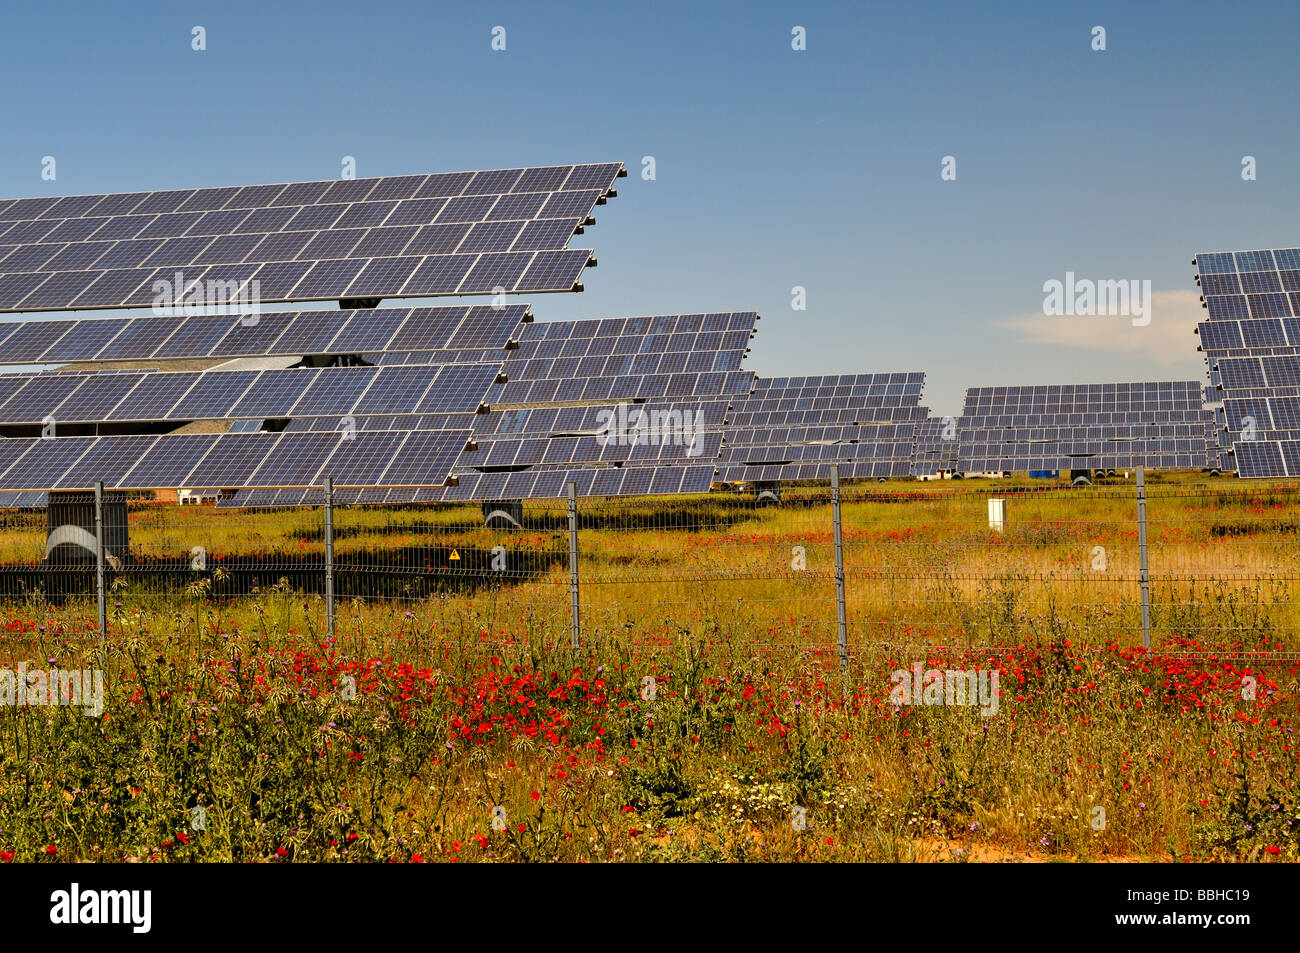 Field with red poppies and many arrays of solar panels for electricity production Near Antequera Spain - Stock Image